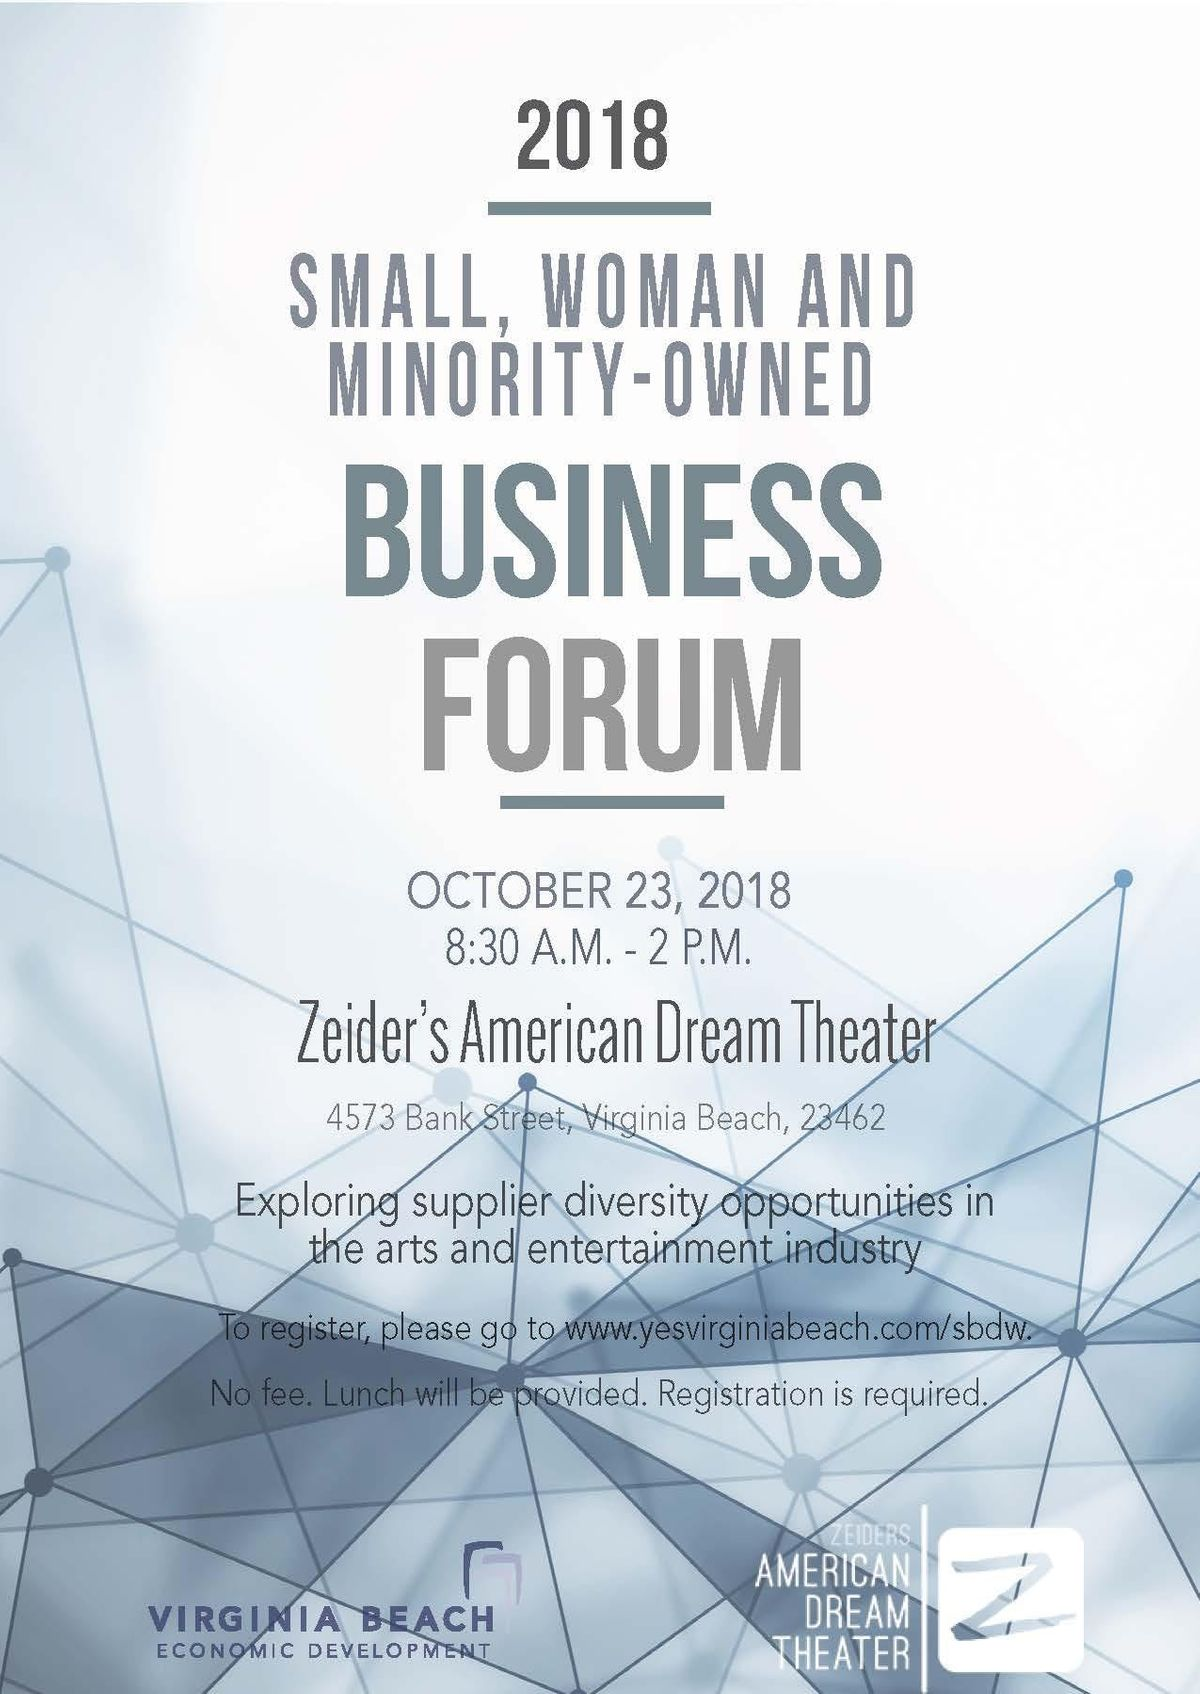 SWaM Business Forum at Zeiders American Dream Theater